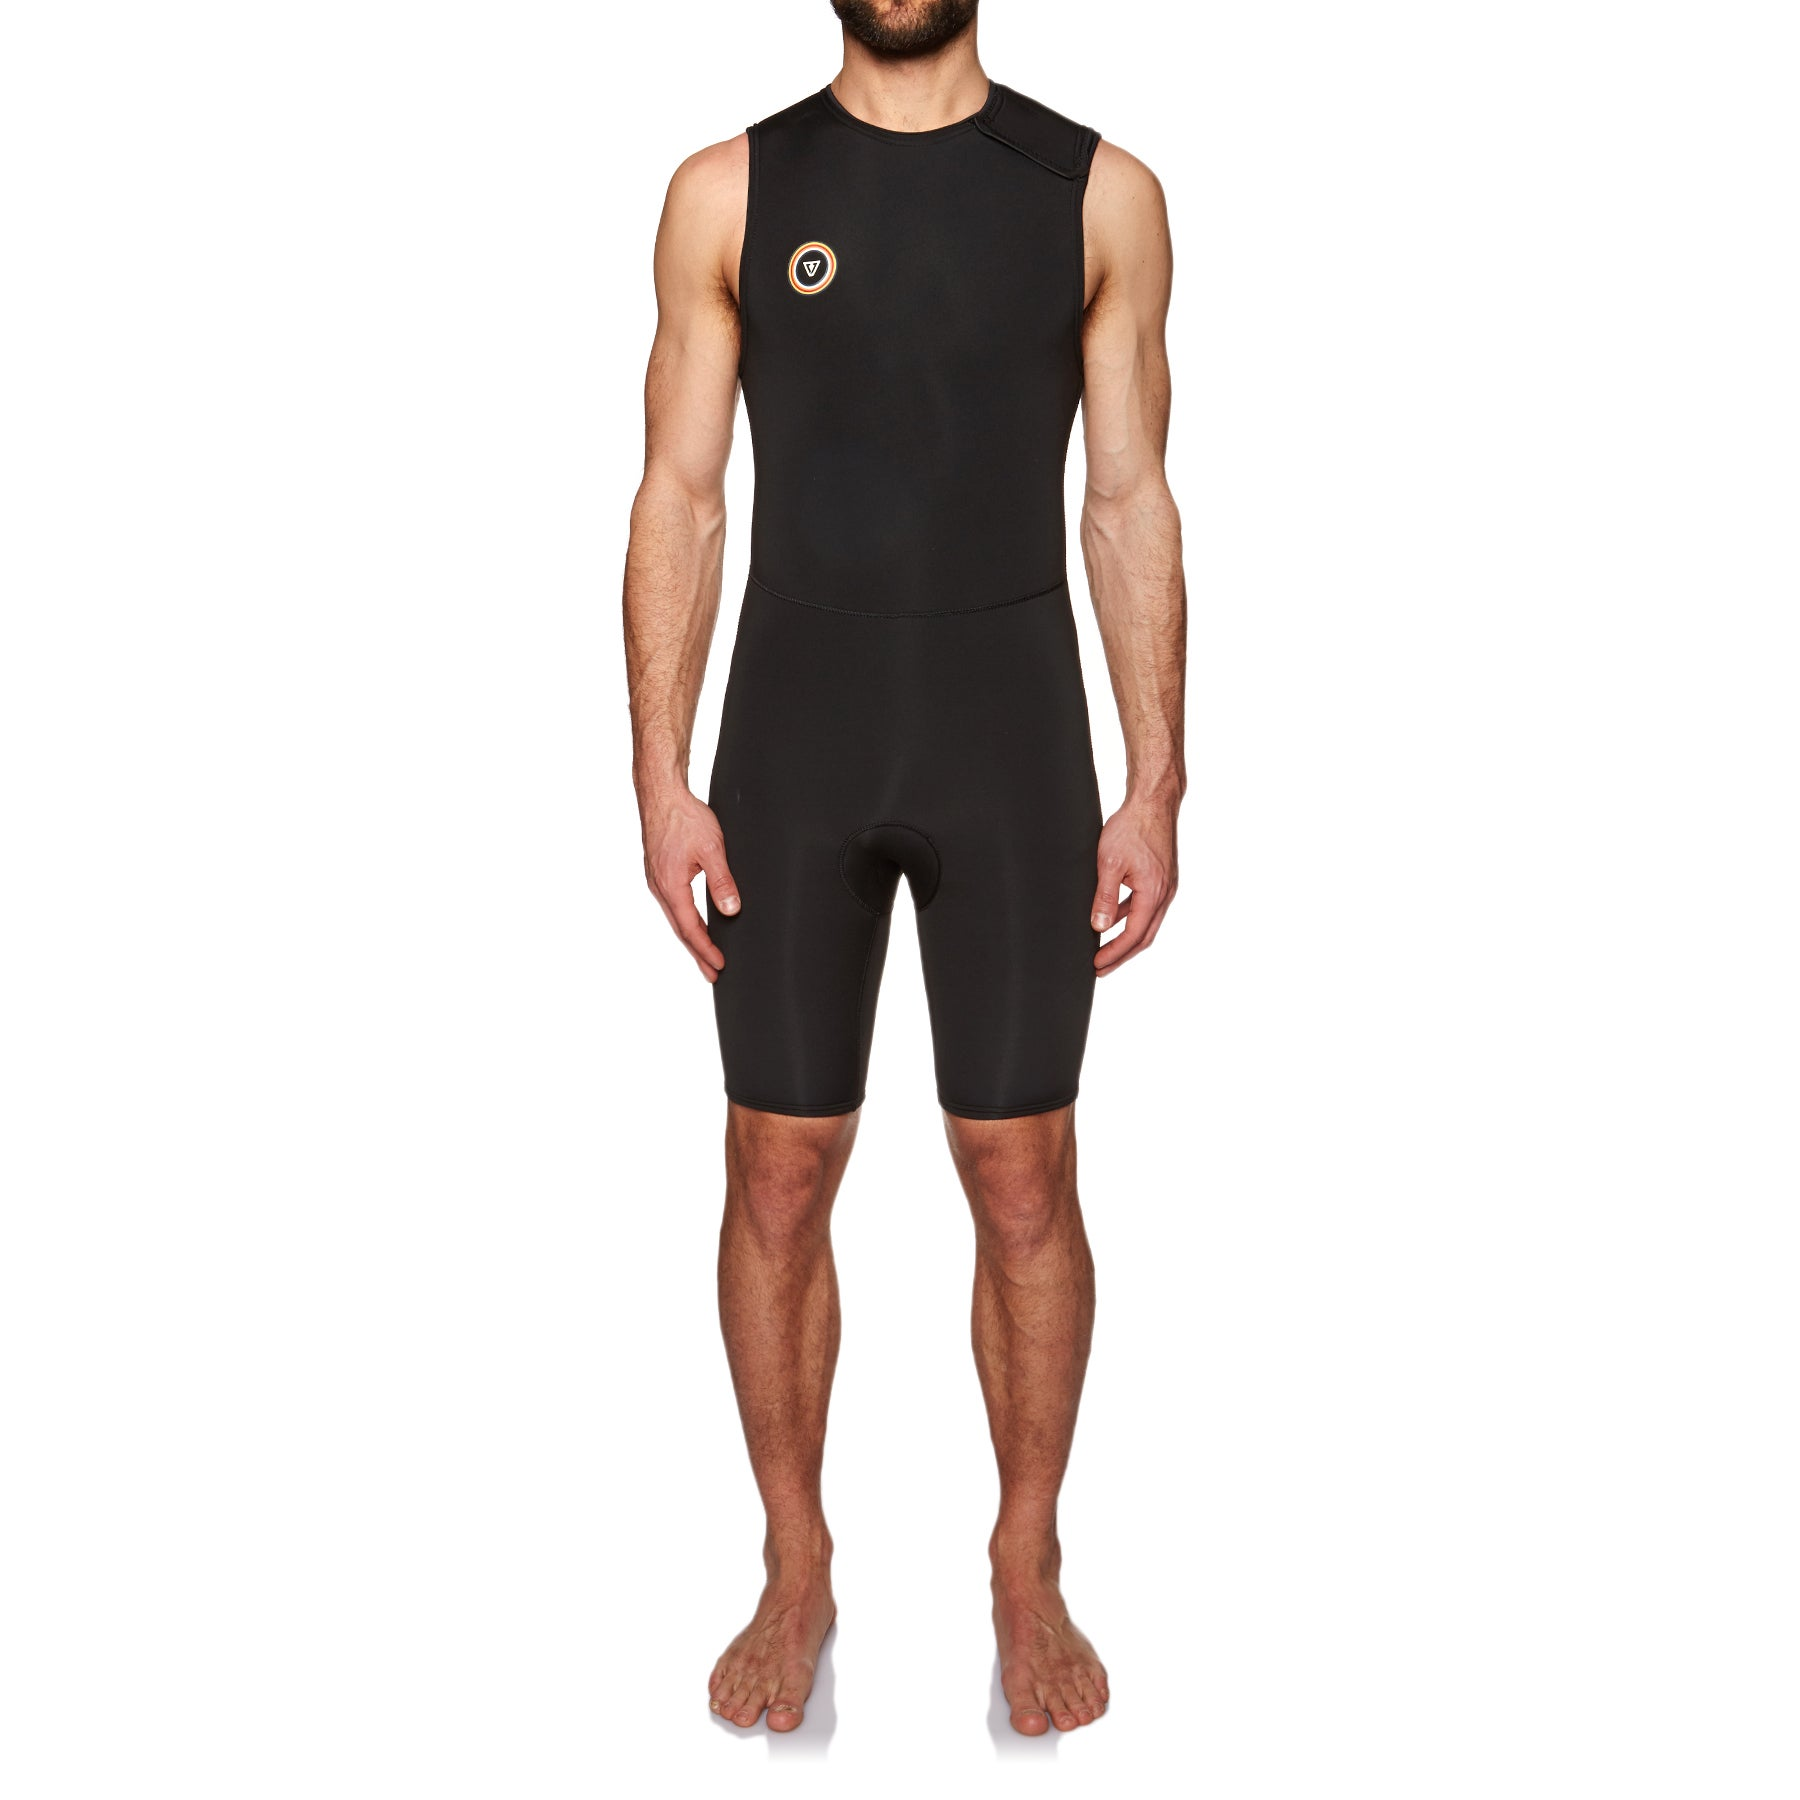 Vissla 7 Seas Tripper Collection 2mm 2019 Sleeveless Short John Wetsuit - Black